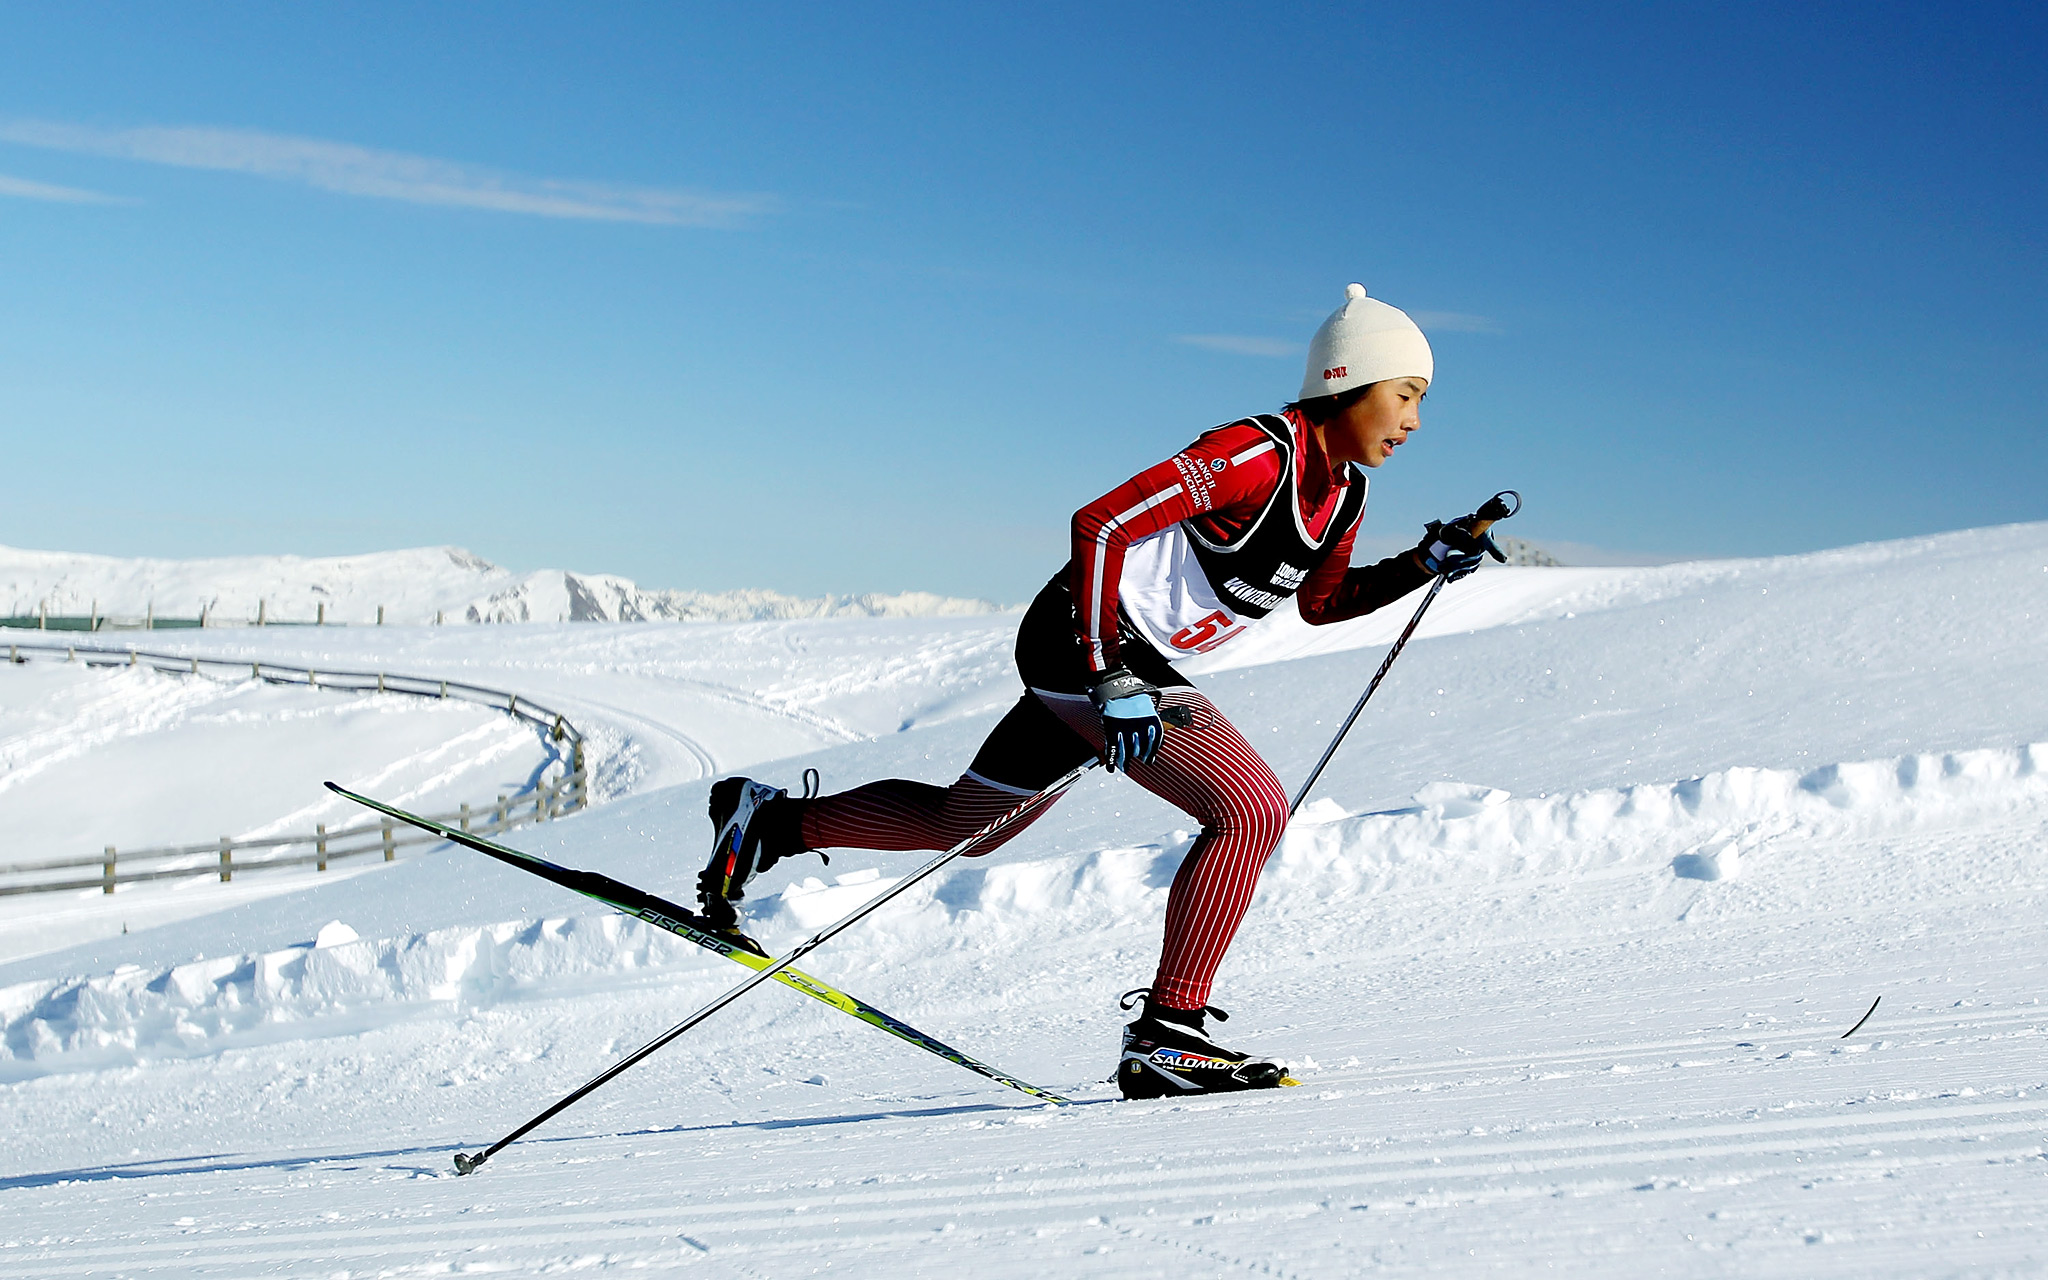 Yeong-ae Lee,Cross Country Women's 10km